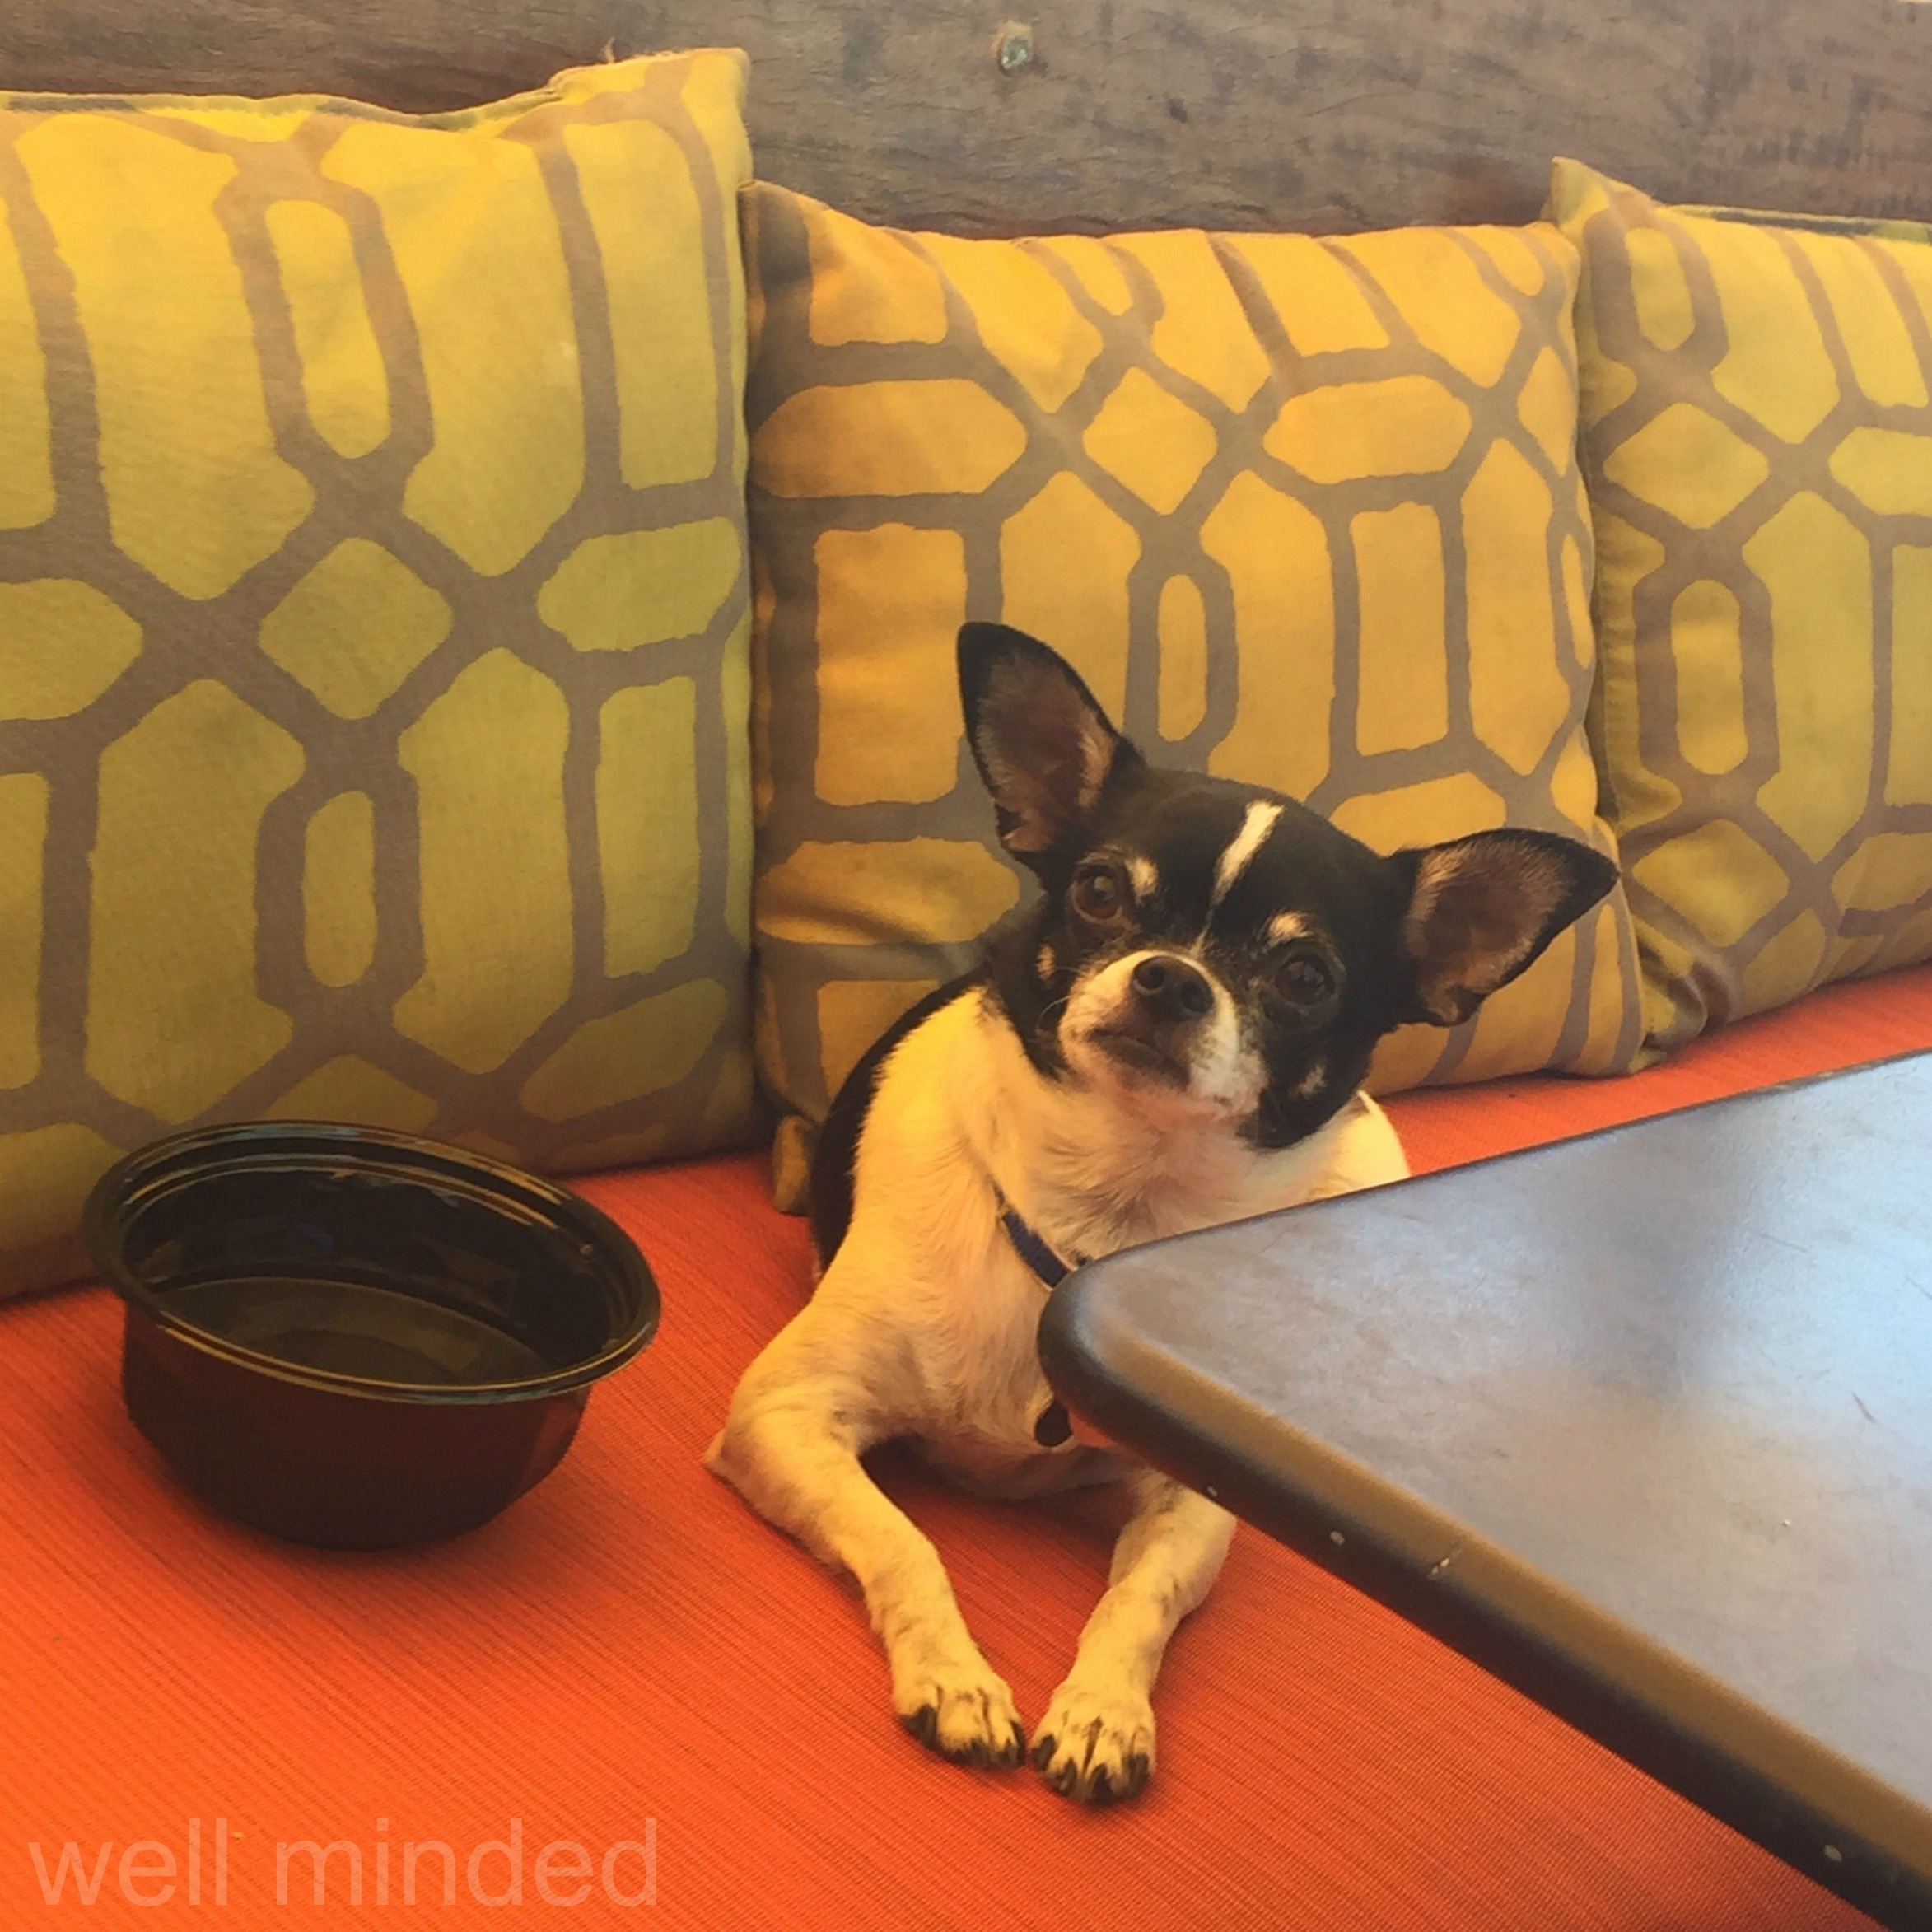 PetFriendlyRestaurant